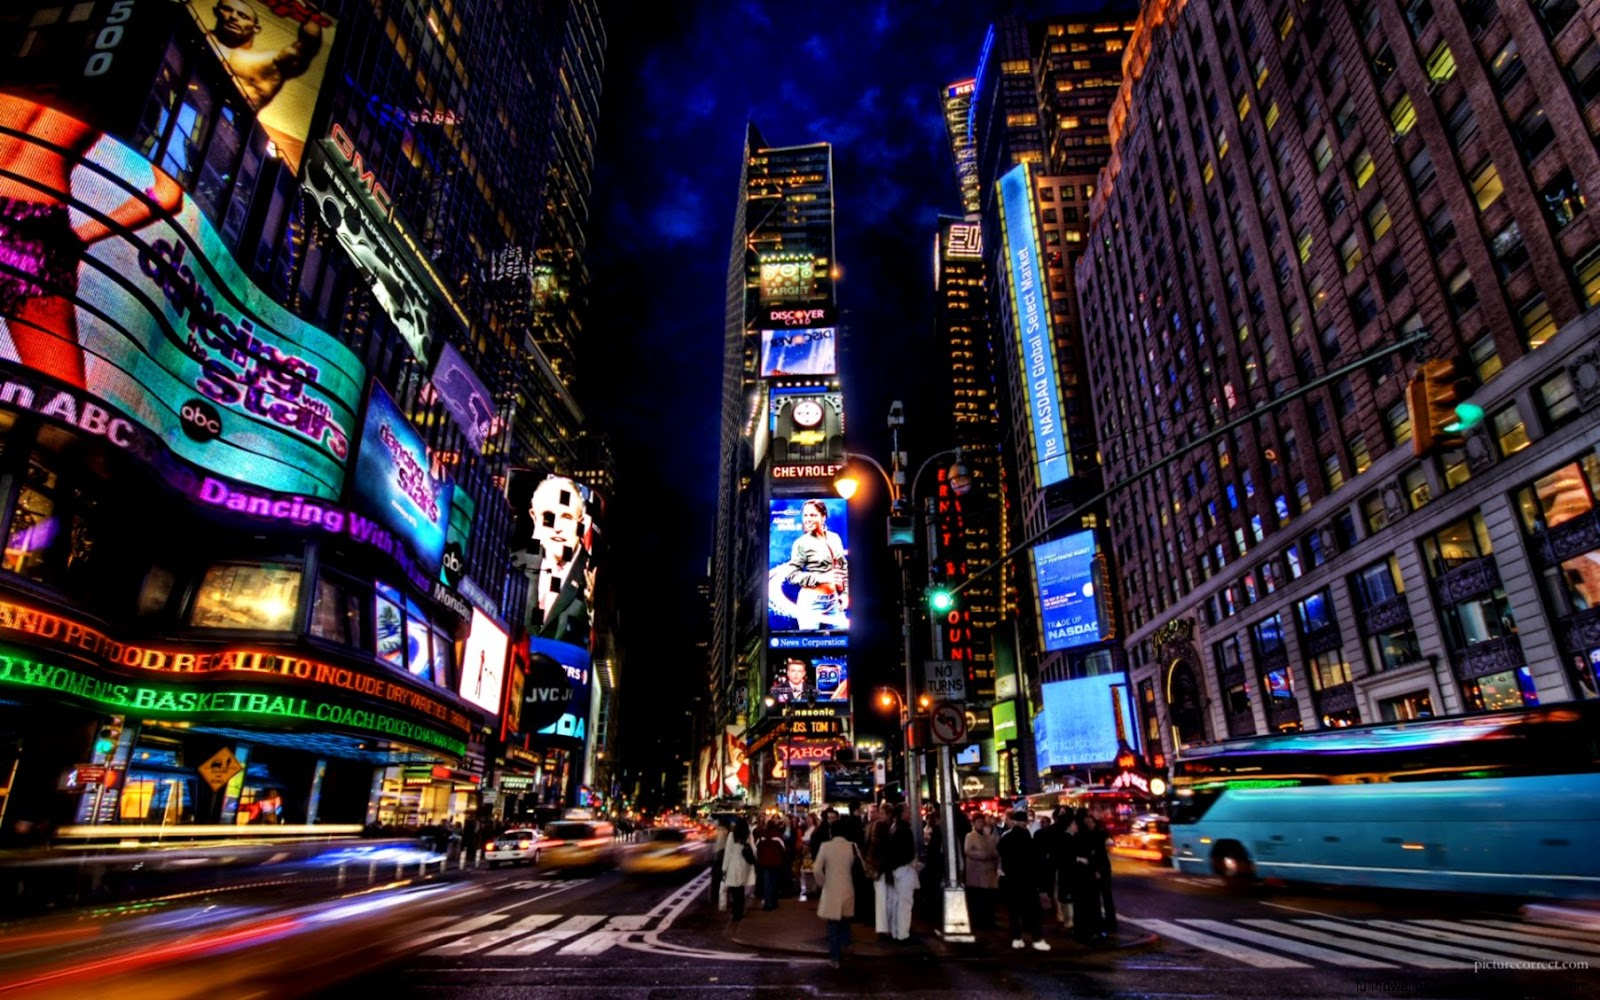 New York City At Night Wallpapers Hd Full Hd Wallpapers